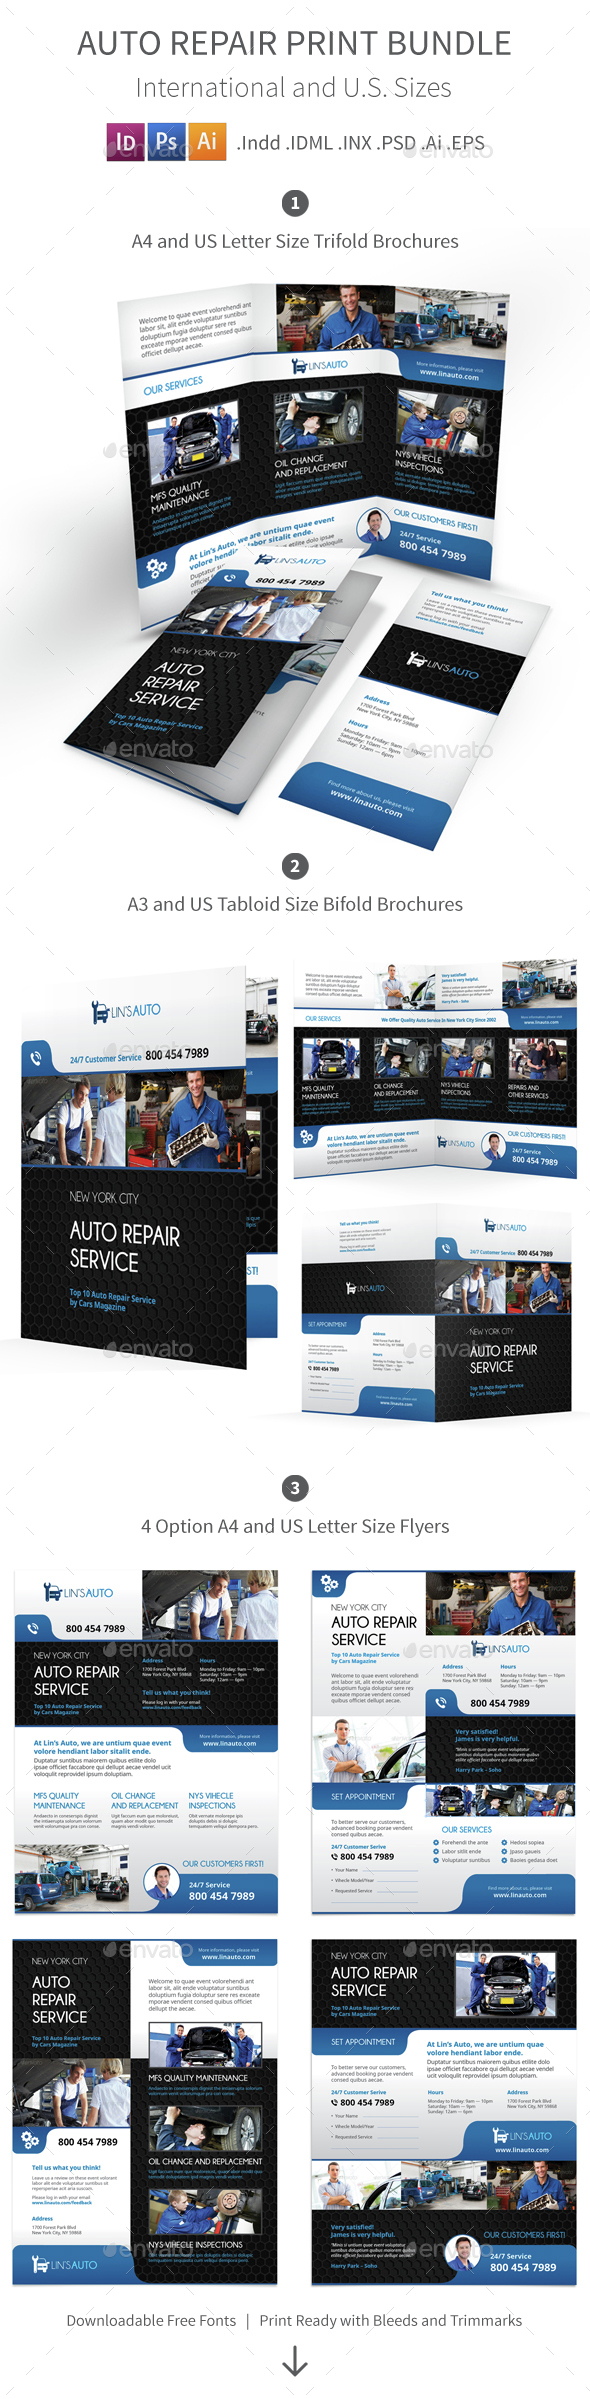 Auto Repair Print Bundle - Informational Brochures